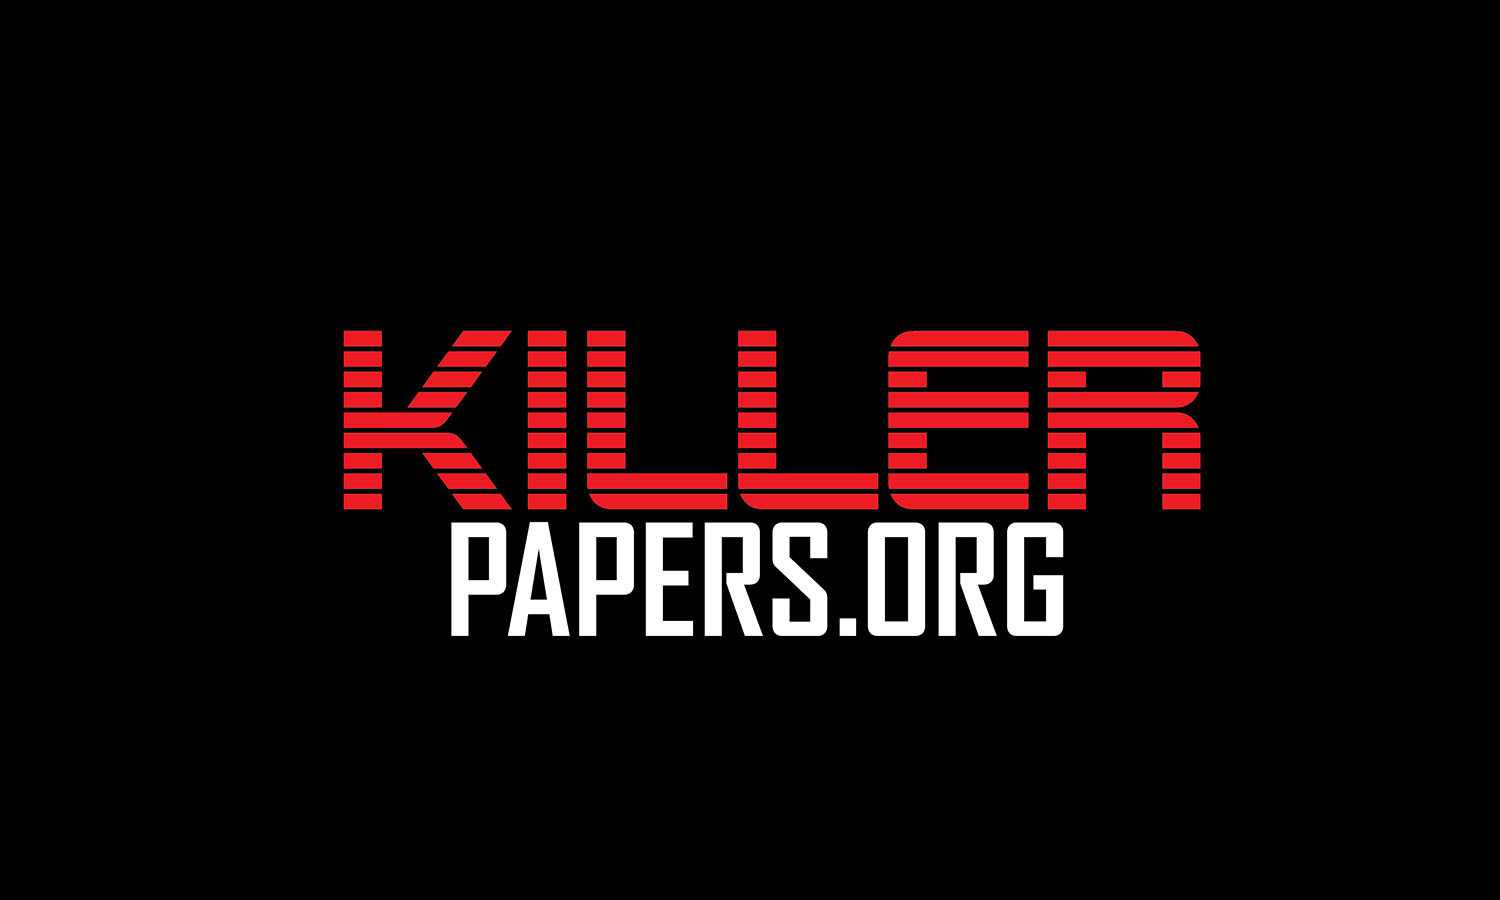 Movers and Shakers interview with KP, the founder of Killerpapers.org